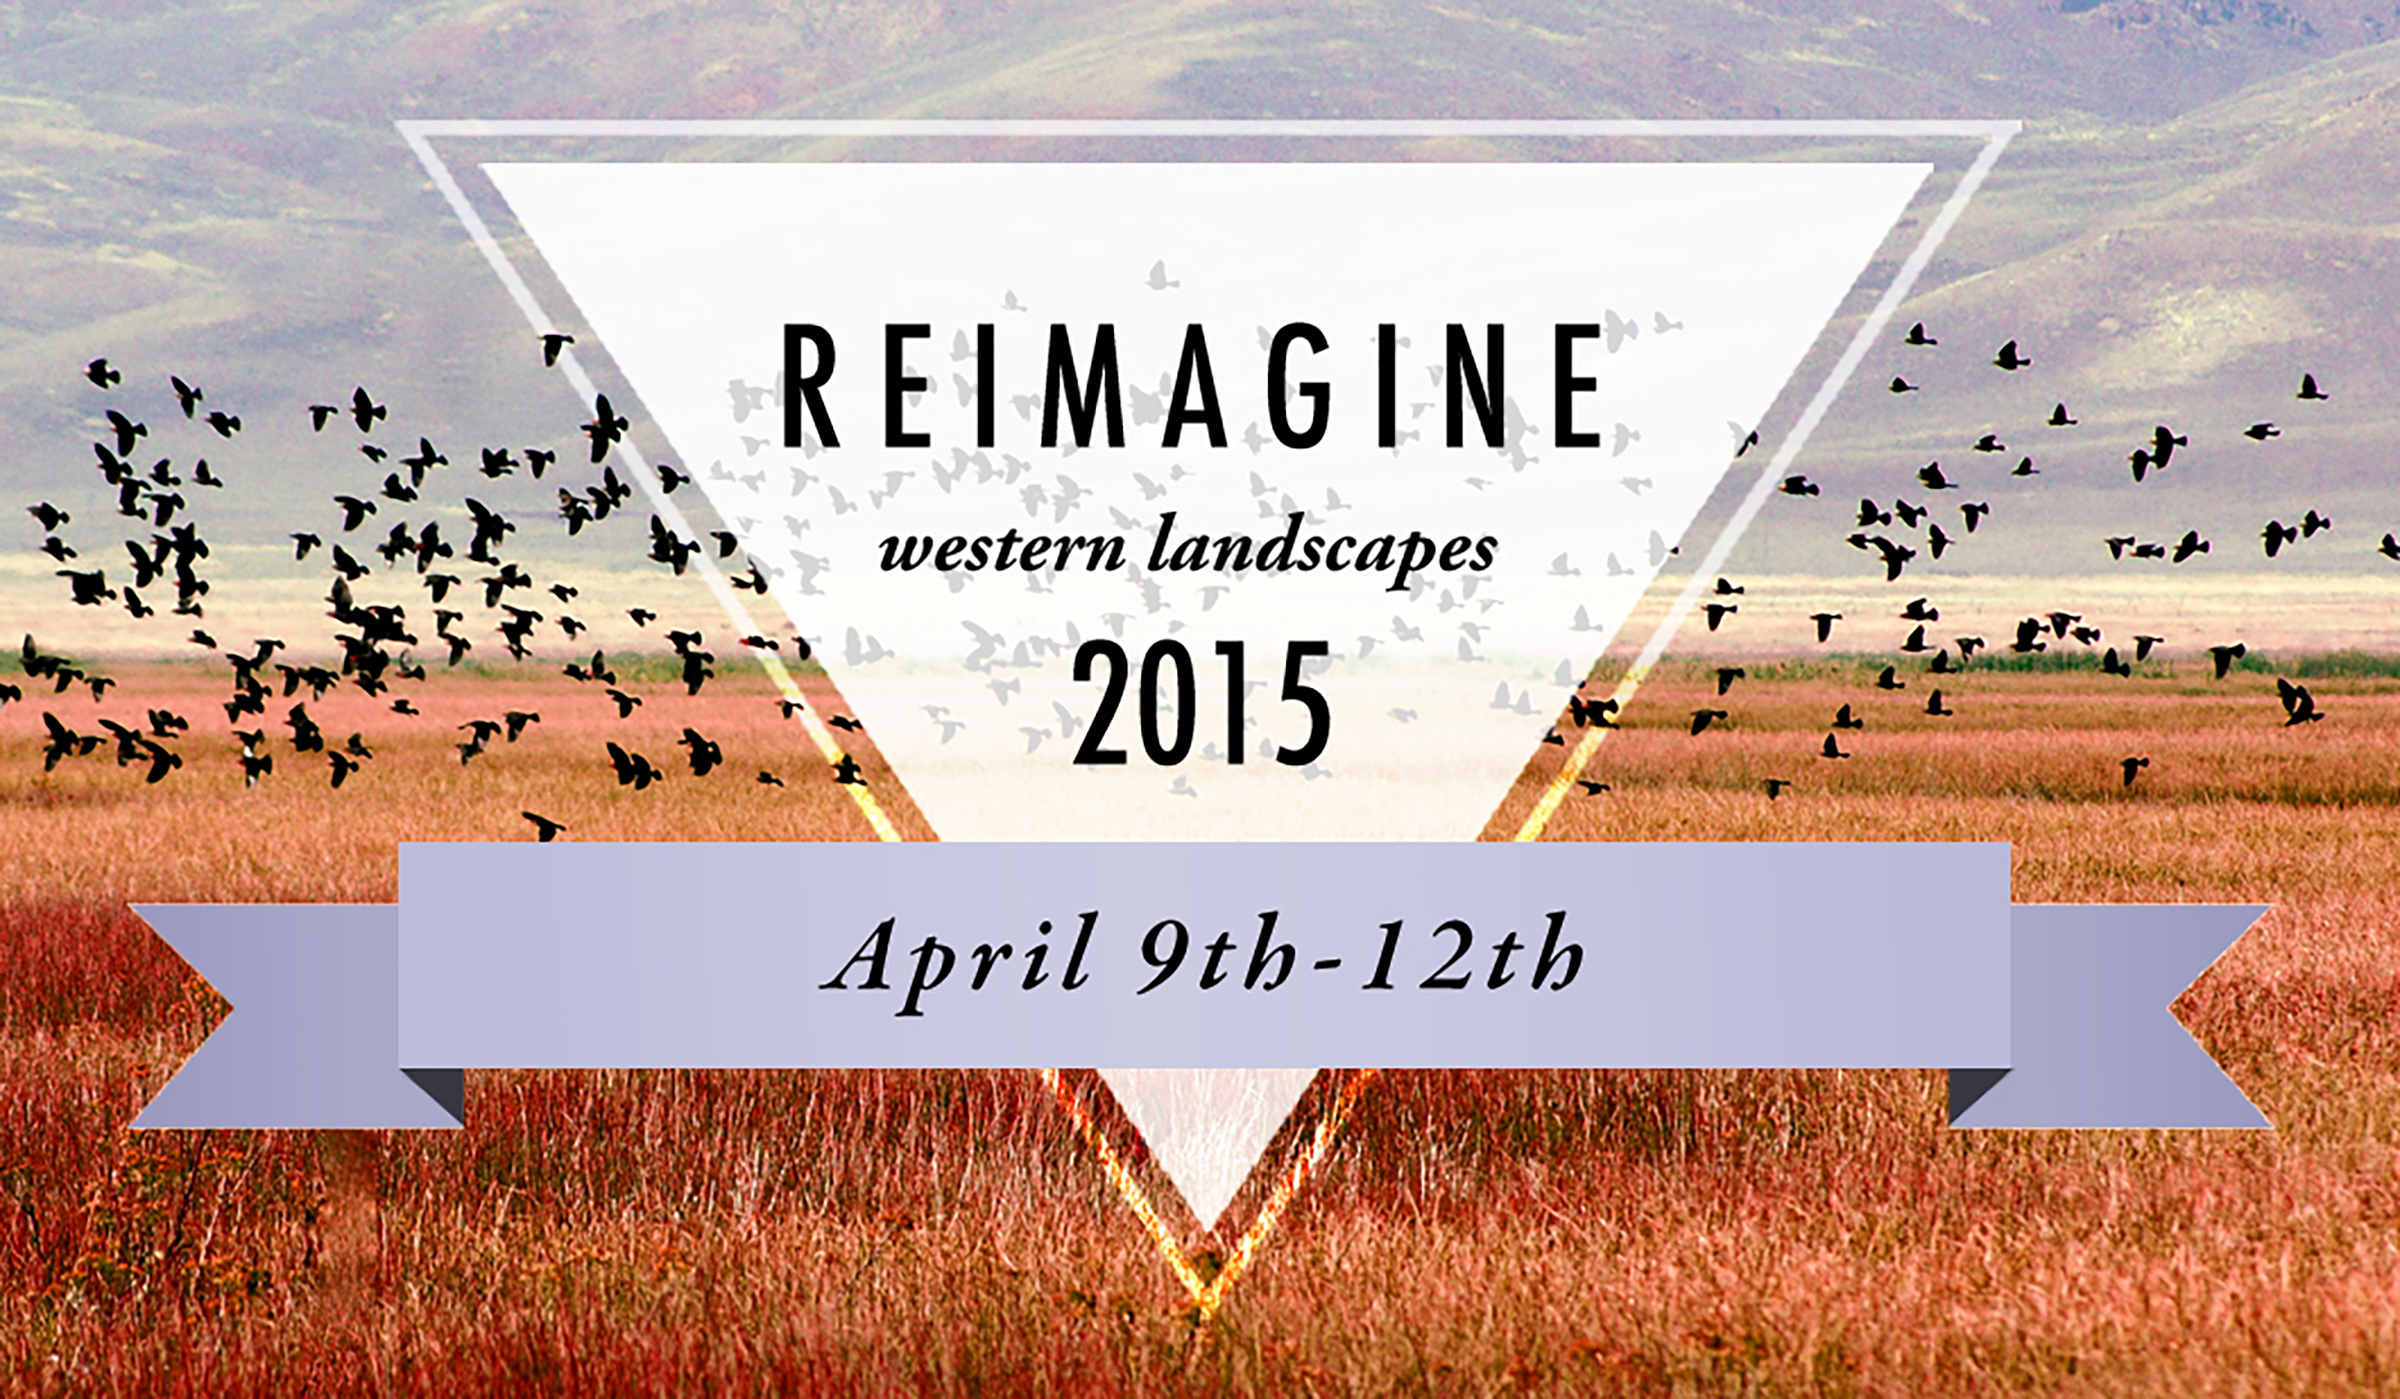 The 2015 Reimagine Western Landscapes Symposium will be held in Summit County, Utah, April 9-11